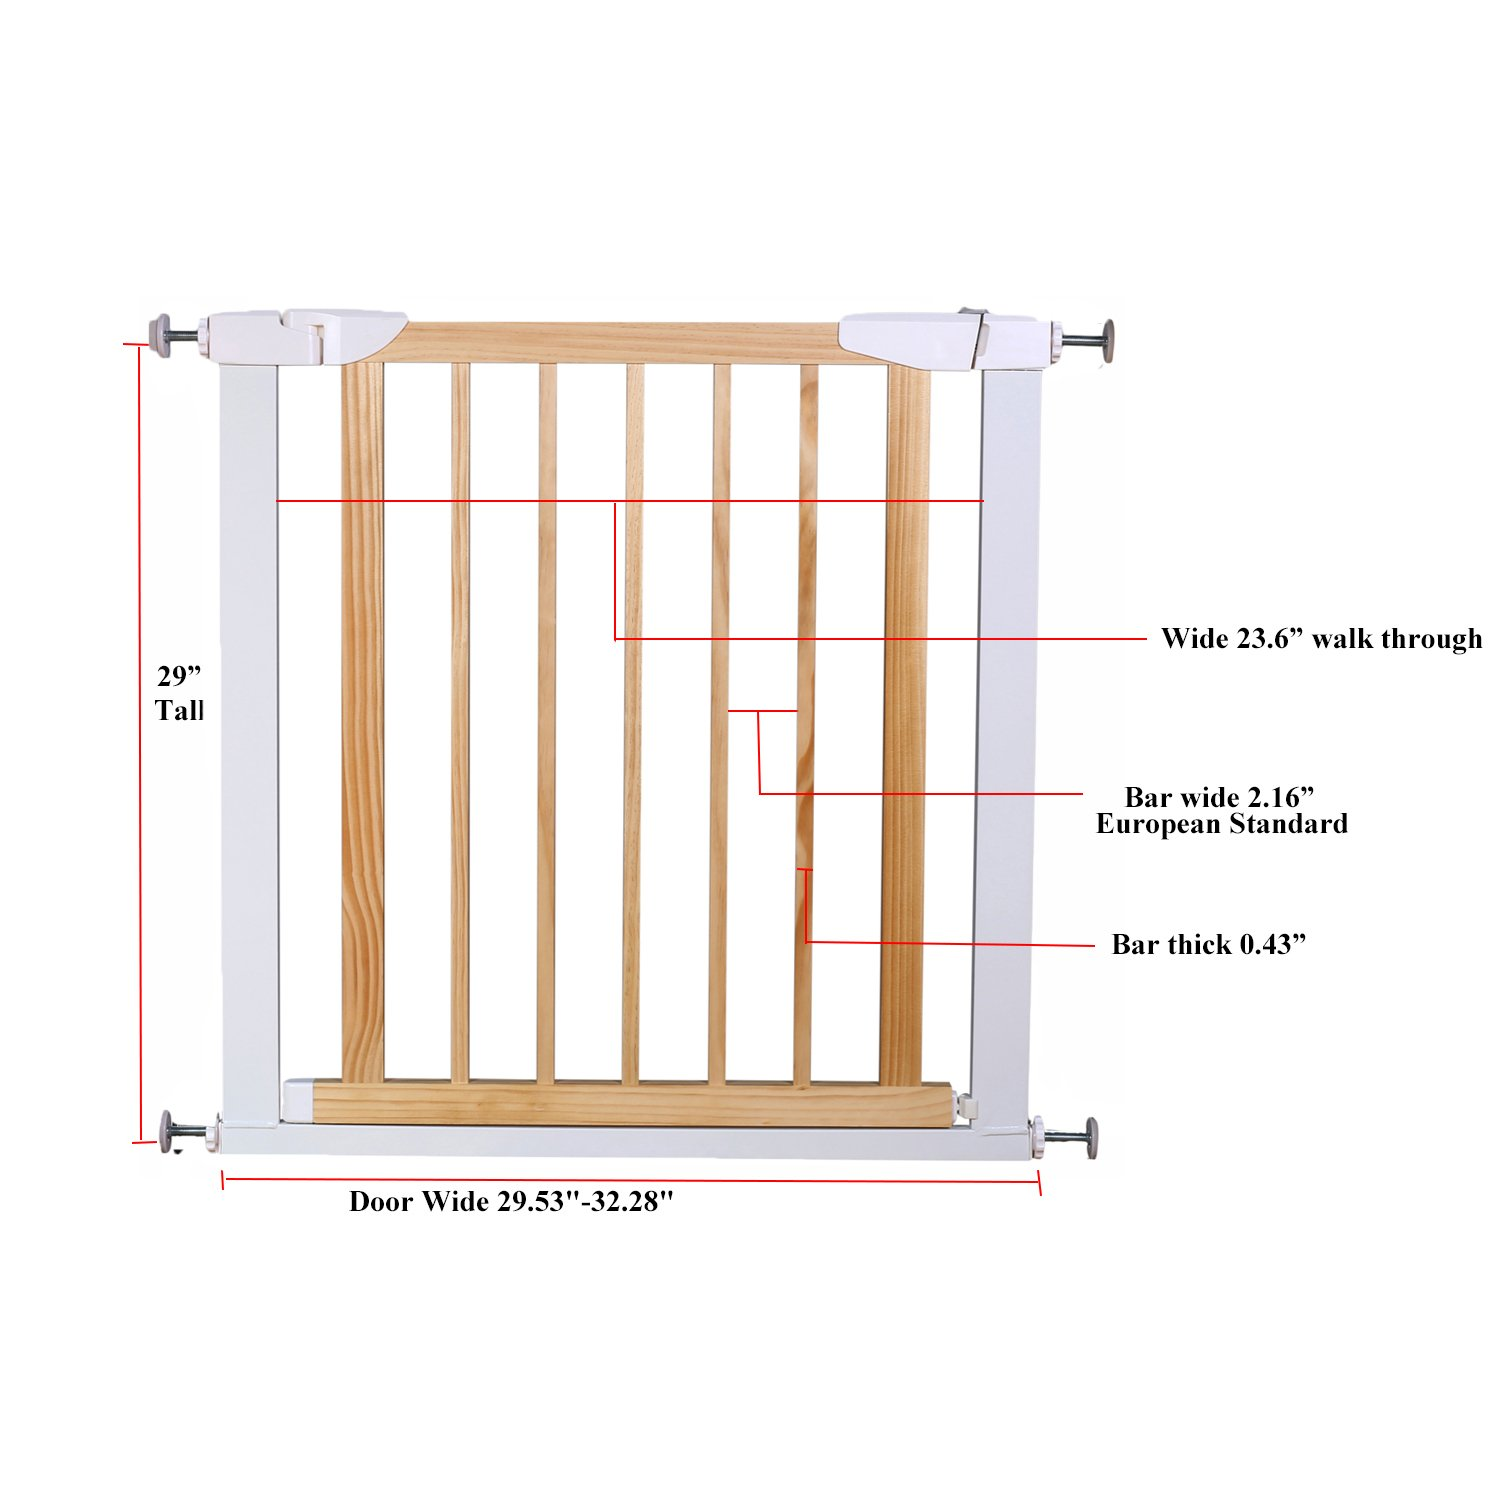 Fairy Baby Multi Use Wood & Metal Walk Thru Gate,White,Fit Spaces between 29.53''-32.28'' by Fairy Baby (Image #7)